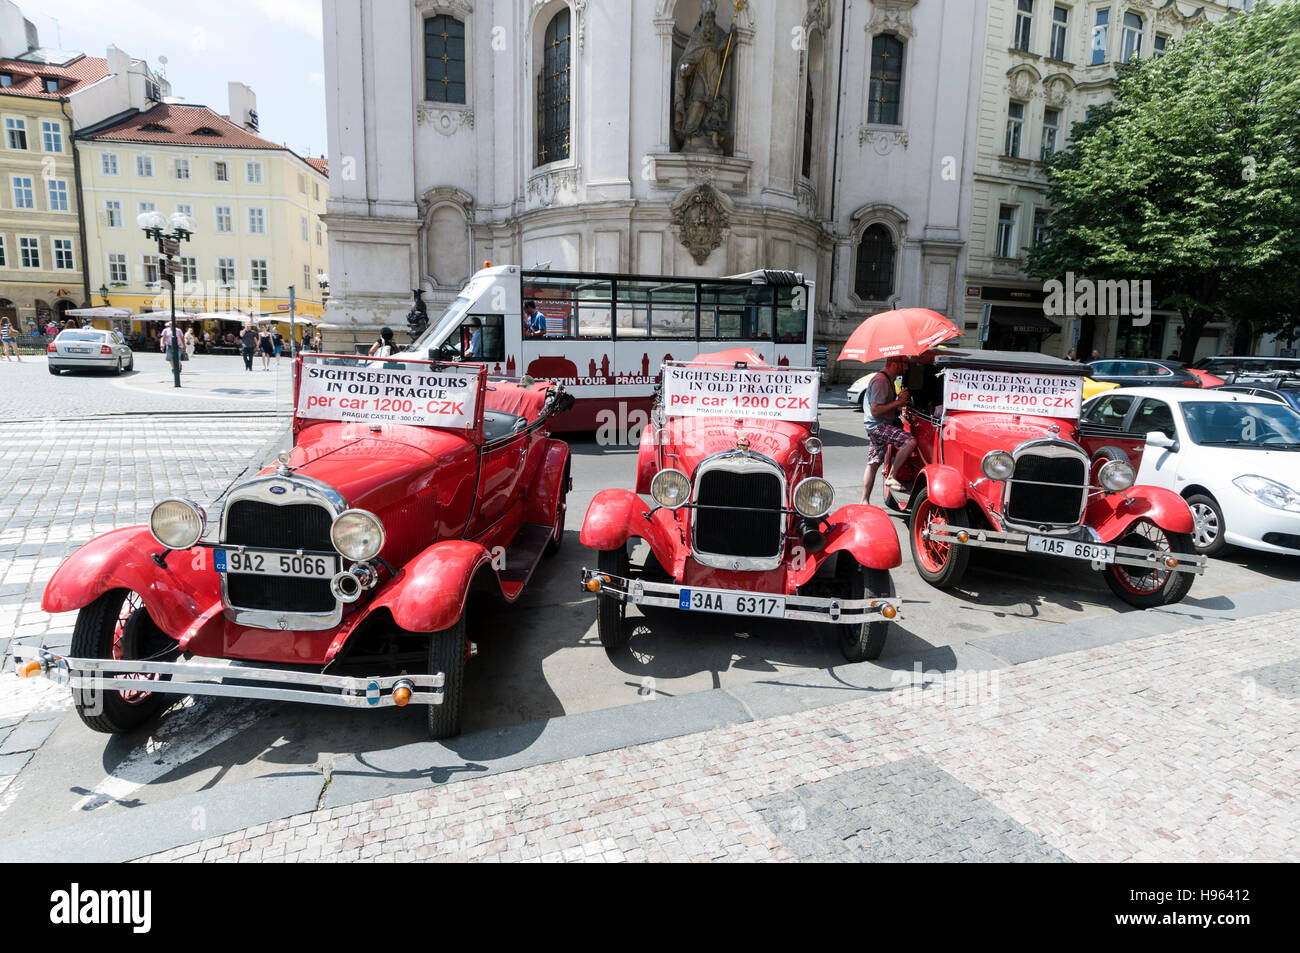 A fleet of classic cars on hire for tourist city sightseeing tours ...